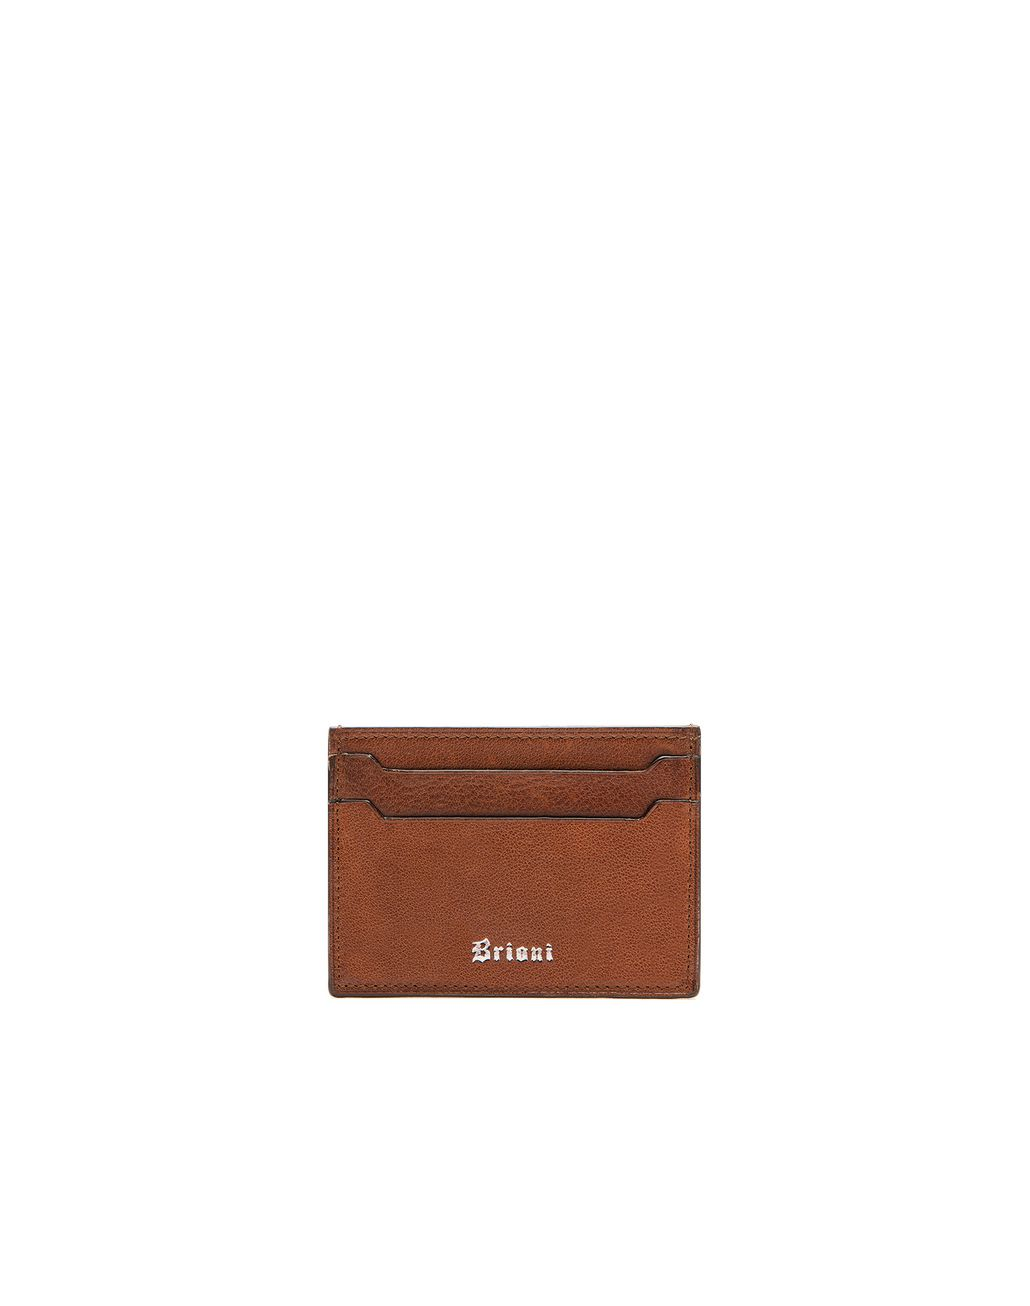 BRIONI Porte-cartes de crédit marron Article de Maroquinerie [*** pickupInStoreShippingNotGuaranteed_info ***] f